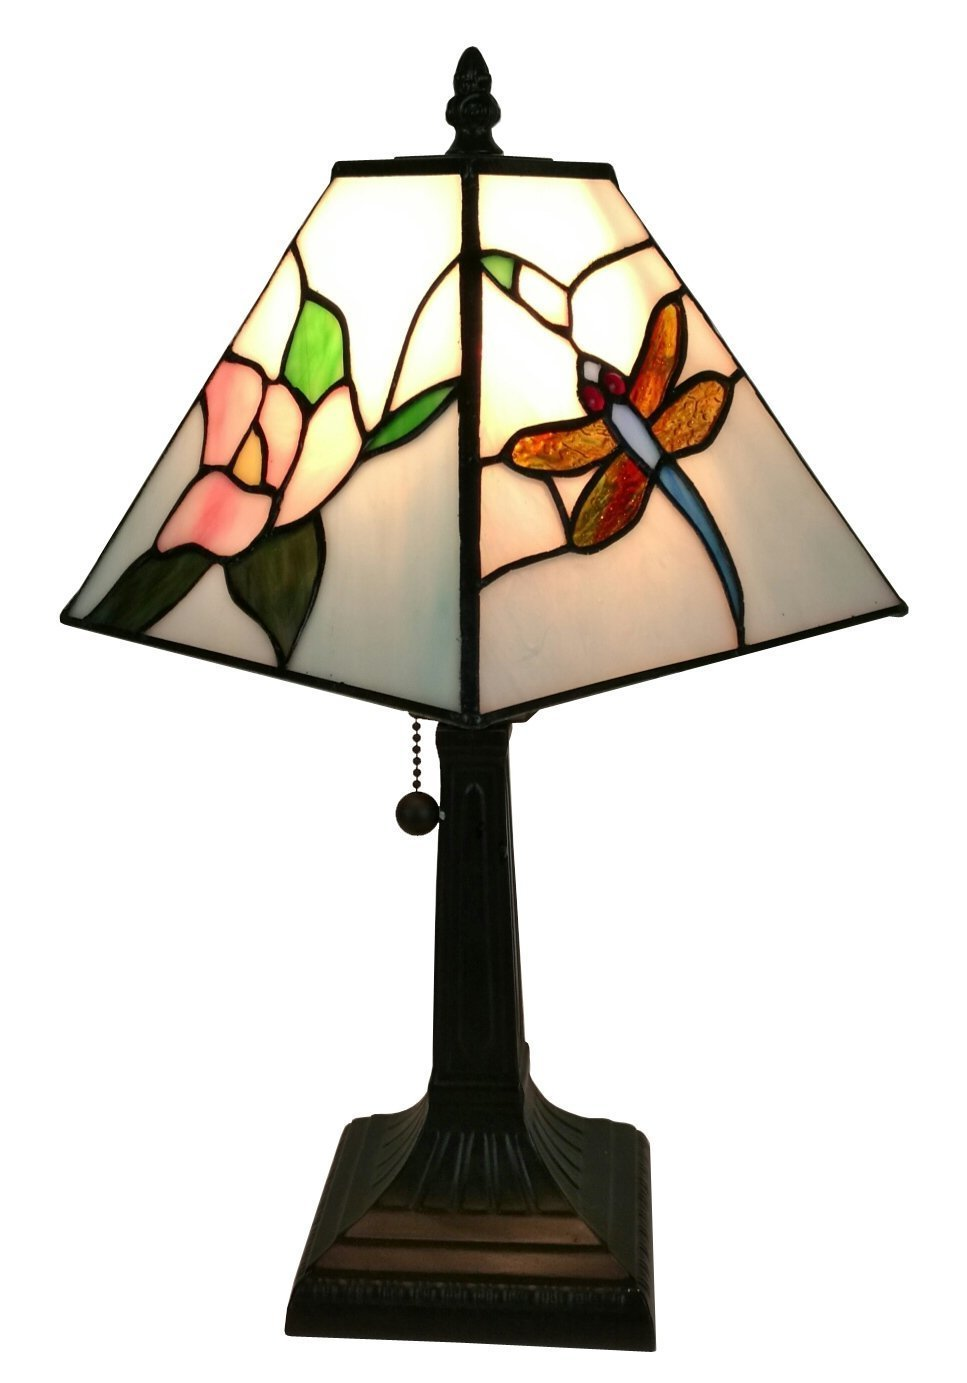 Tiffany Style Mini Accent Lamp 15 Tall Stained Glass Pink Red Floral Dragonfly Vintage Antique Light D cor Nightstand Living Room Bedroom Office Handmade Gift AM220TL08 Amora Lighting